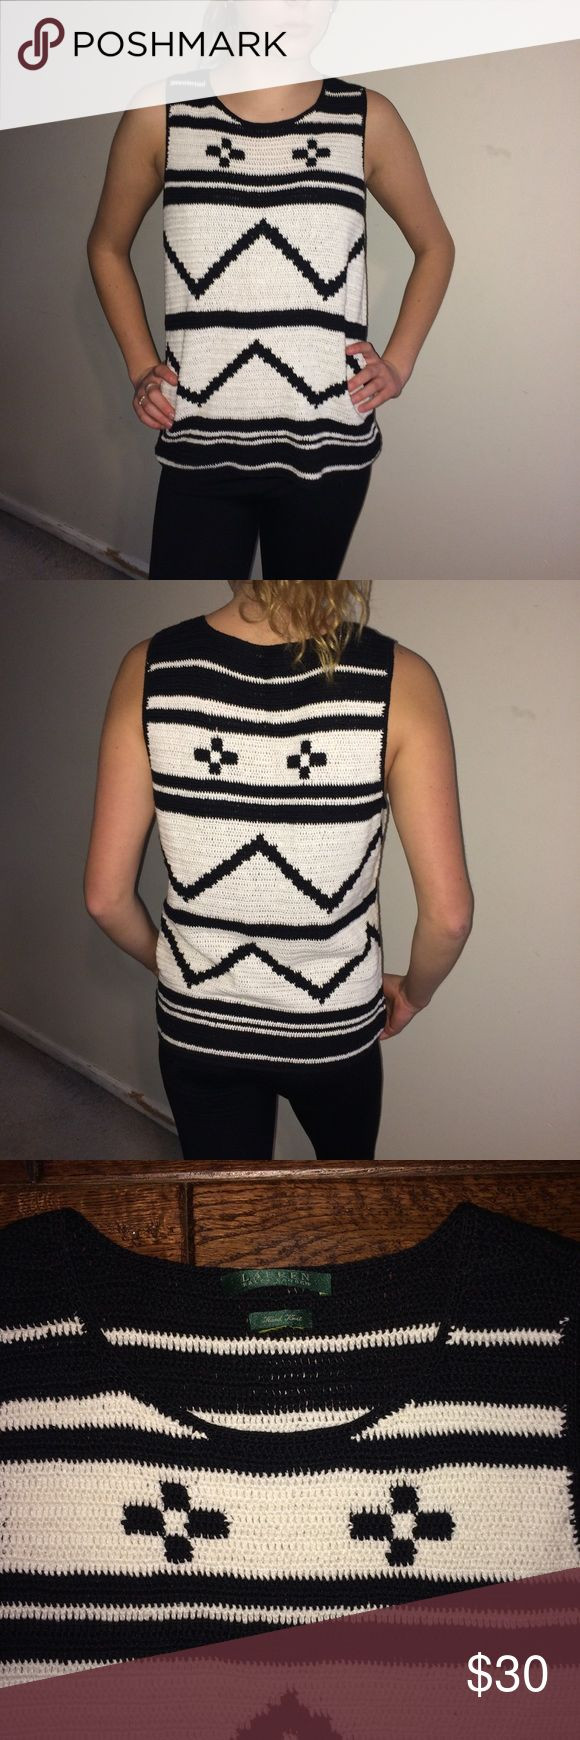 "Lauren By Ralph Lauren Hand Knit Sleeveless Shell Excellent, very lightly used condition! 55% Linen and 45% Cotton. Hand wash. Black and white southwestern design. This was a hand-me-down from my friend who said she thinks she wore it once. She did cut out the content and care tags. (I found them online.) For reference, my model is 5 feet 8.5"" tall and weighs 120 pounds. I believe this top is probably a size medium as it is slightly big on her. SE Lauren Ralph Lauren Sweaters"